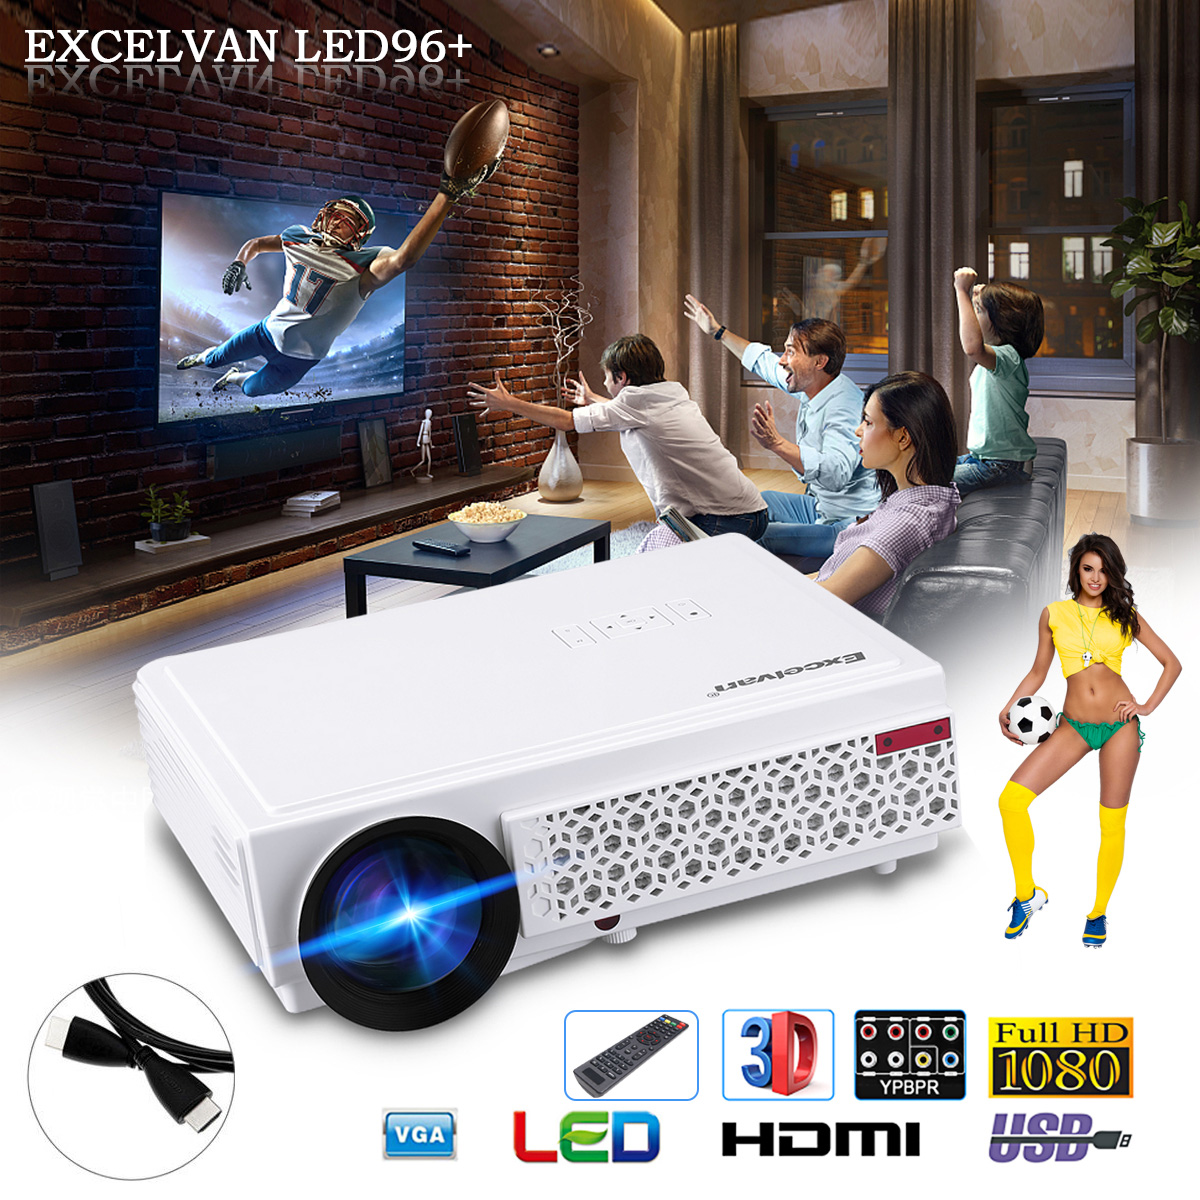 Excelvan 96+ Native 1280*800 support 1080p Led Projector White US PLUG